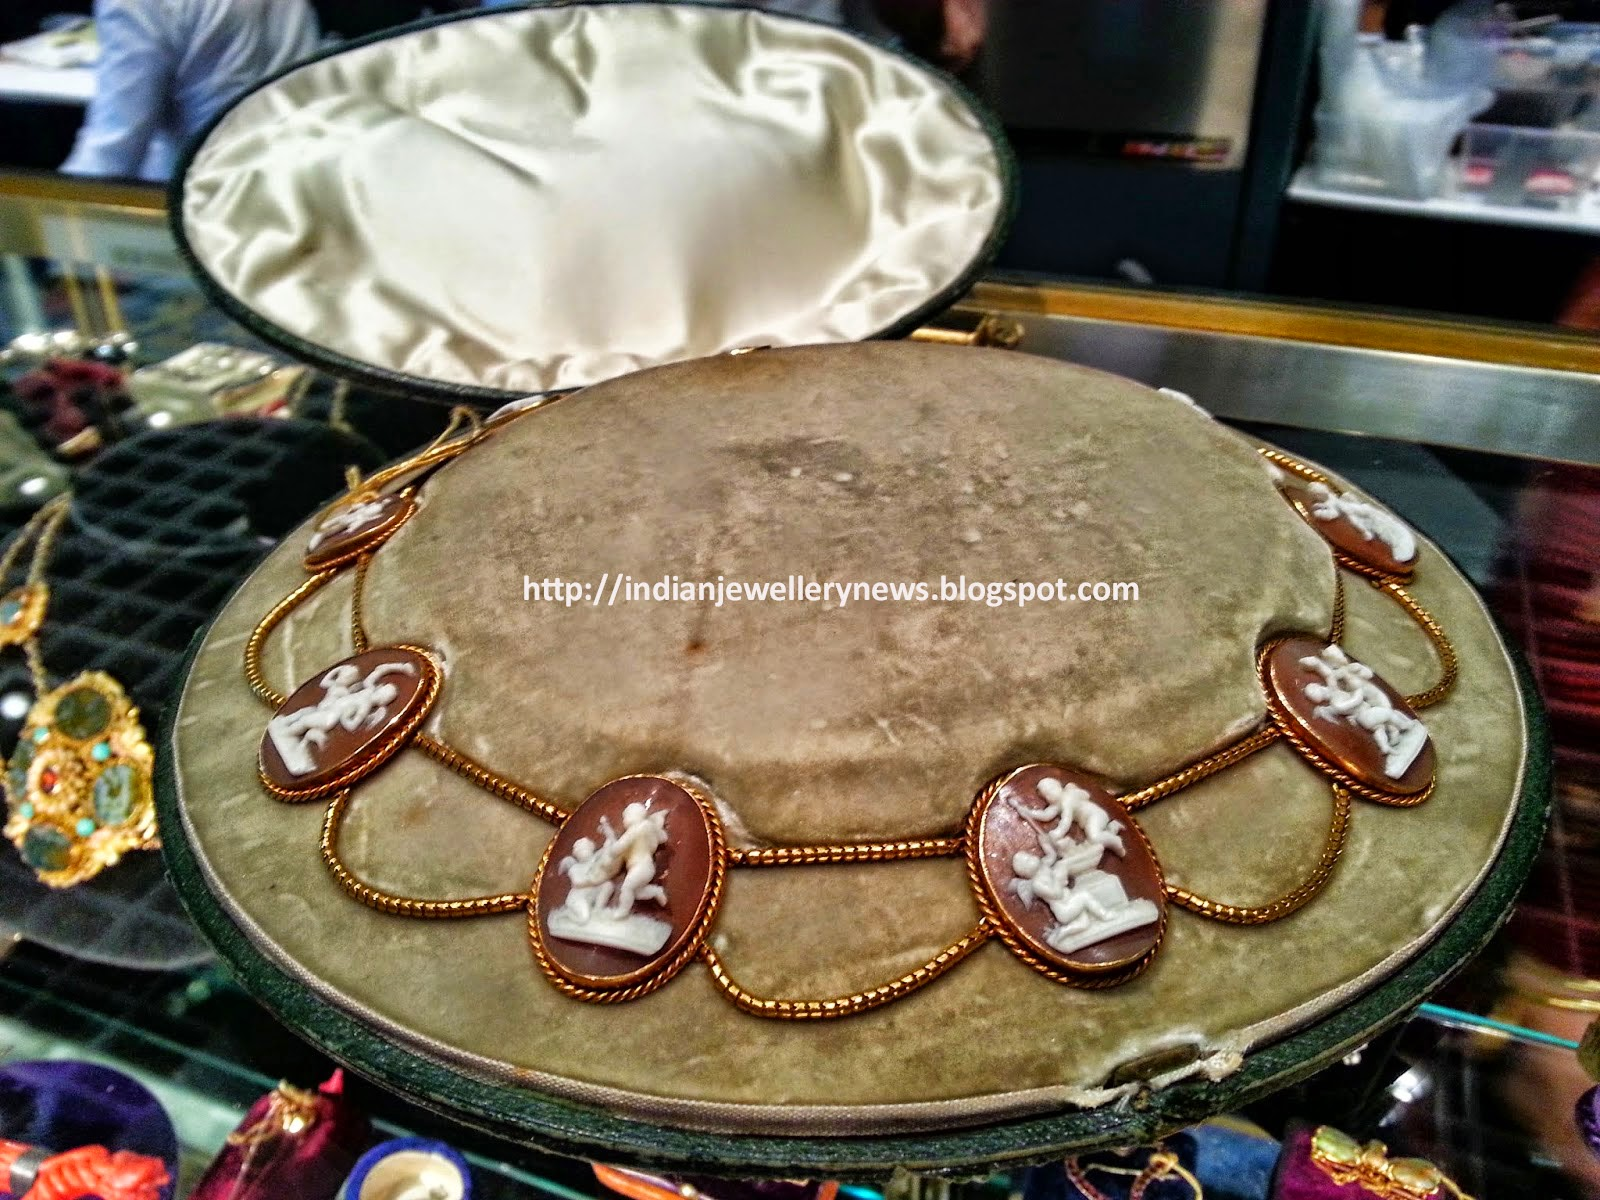 Antique Jewelry Show at Las Vegas